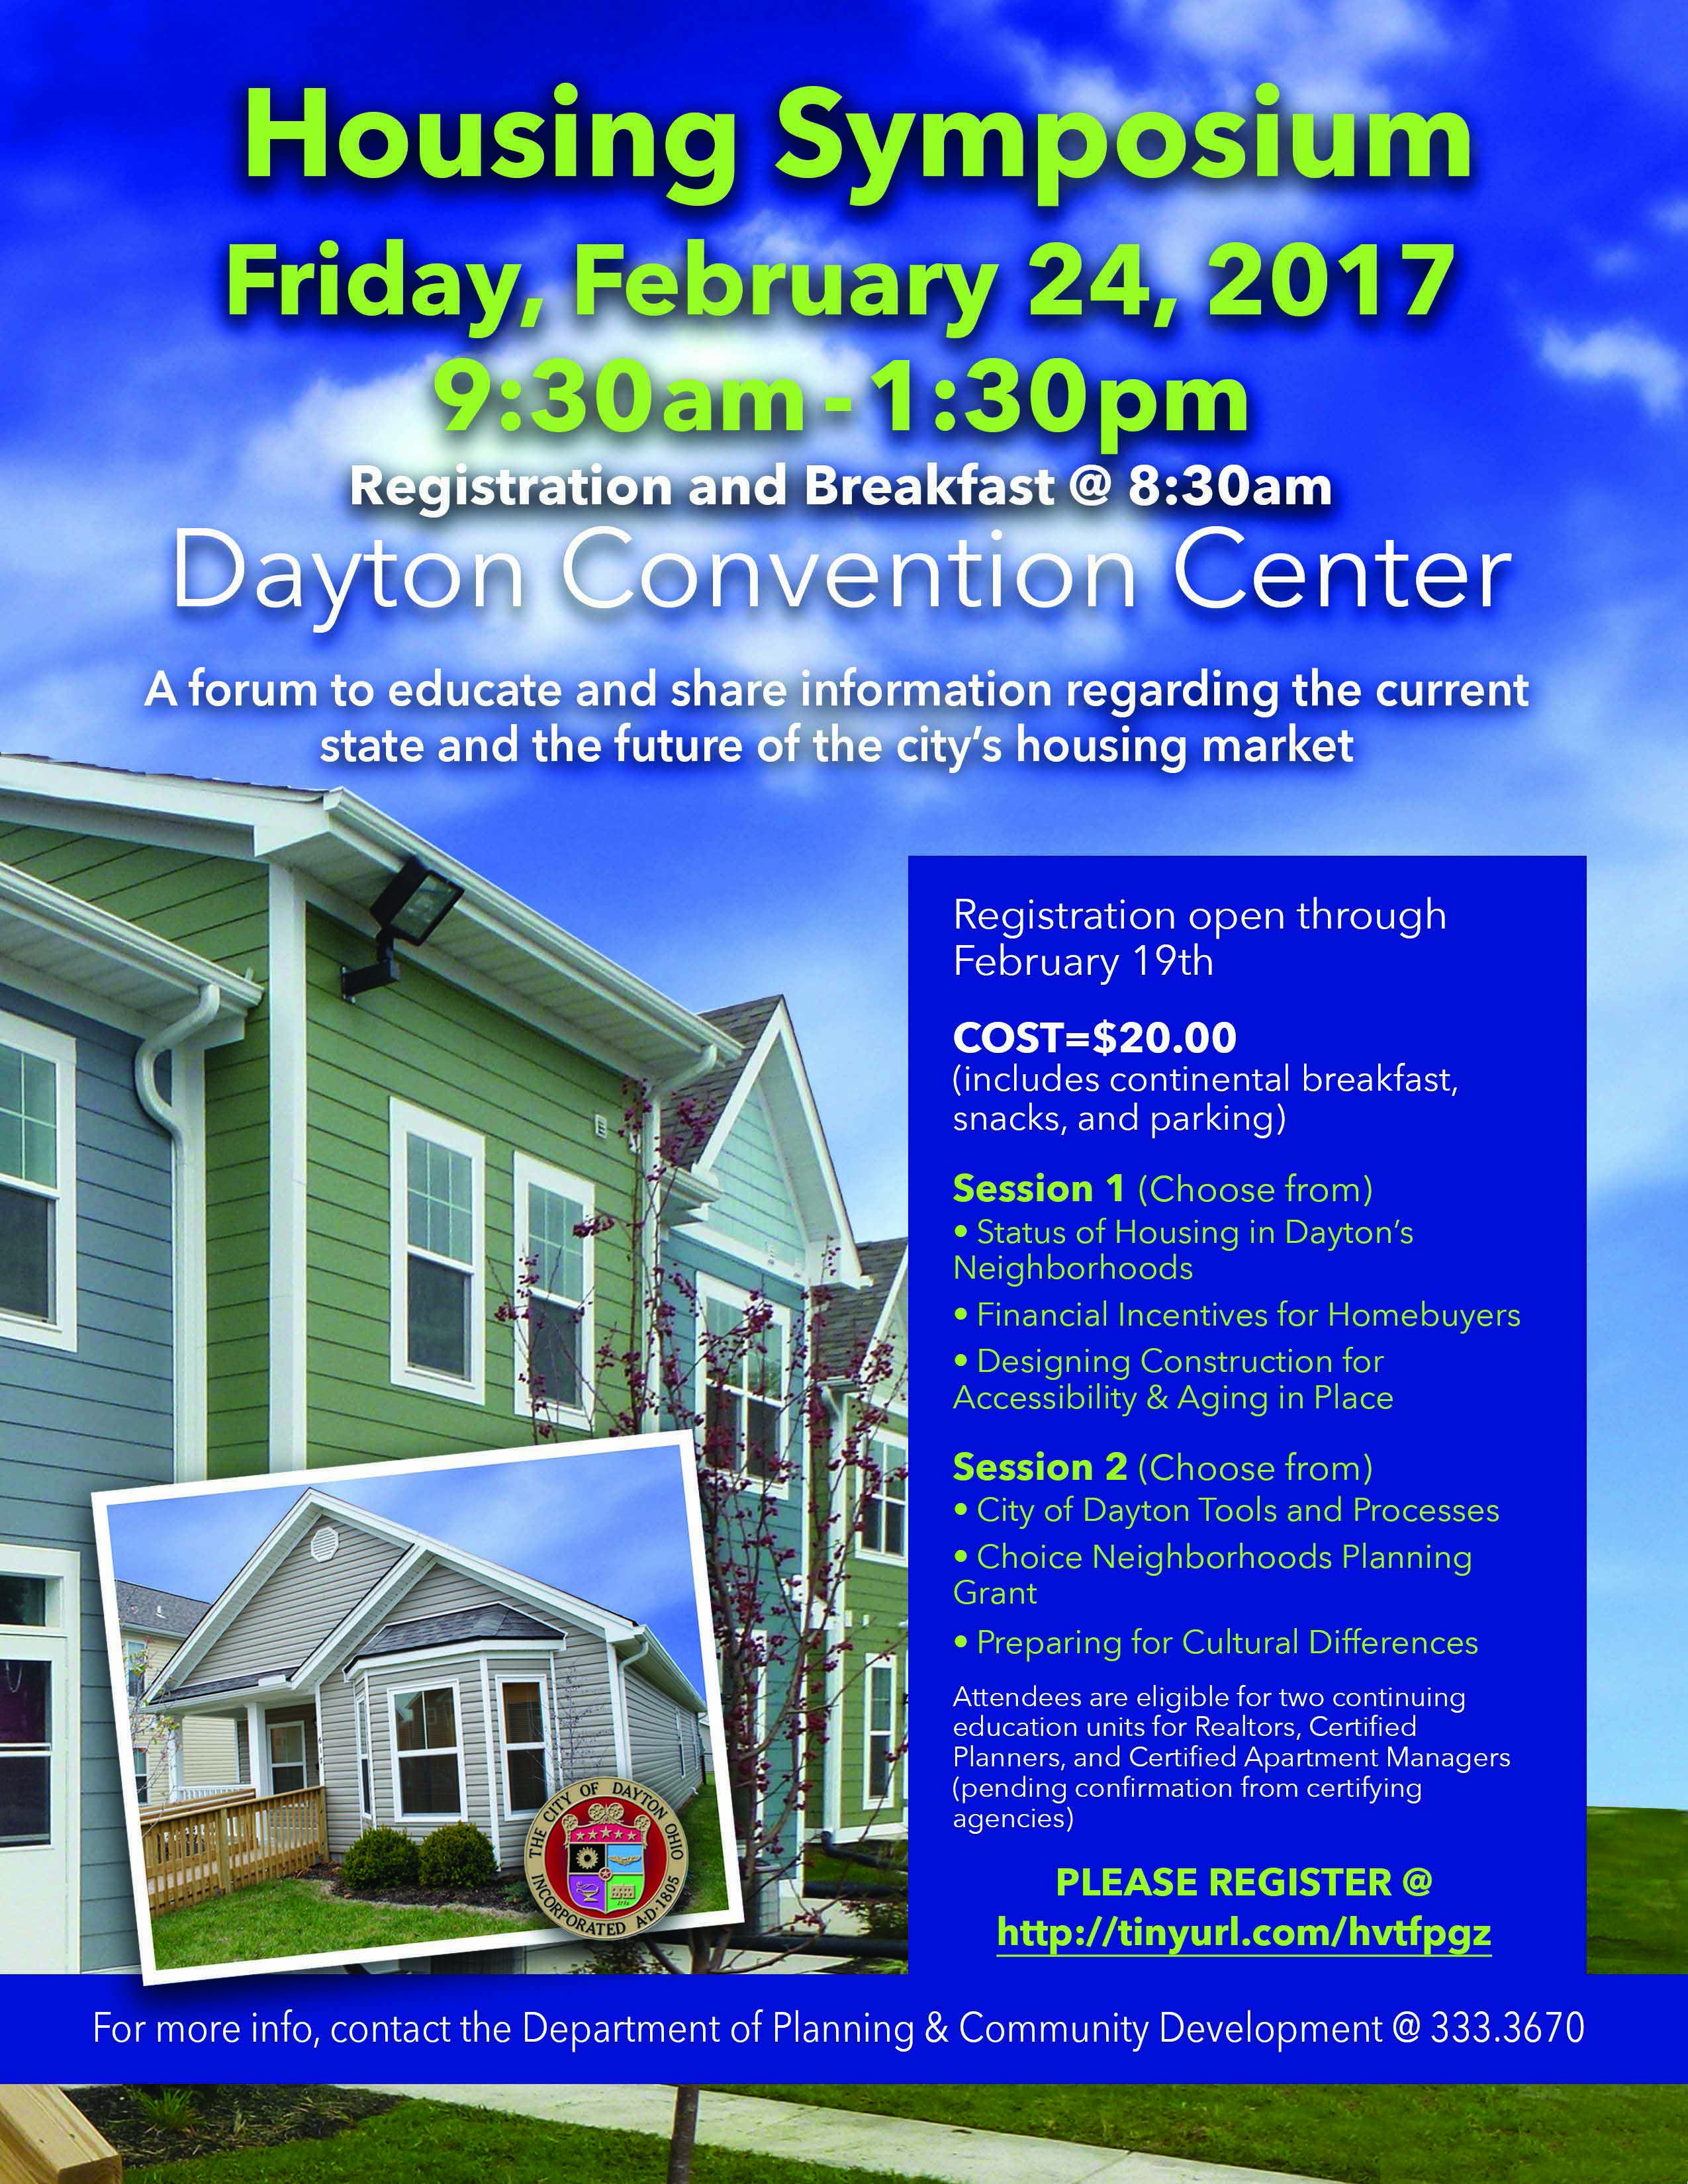 Housing Symposium Flyer